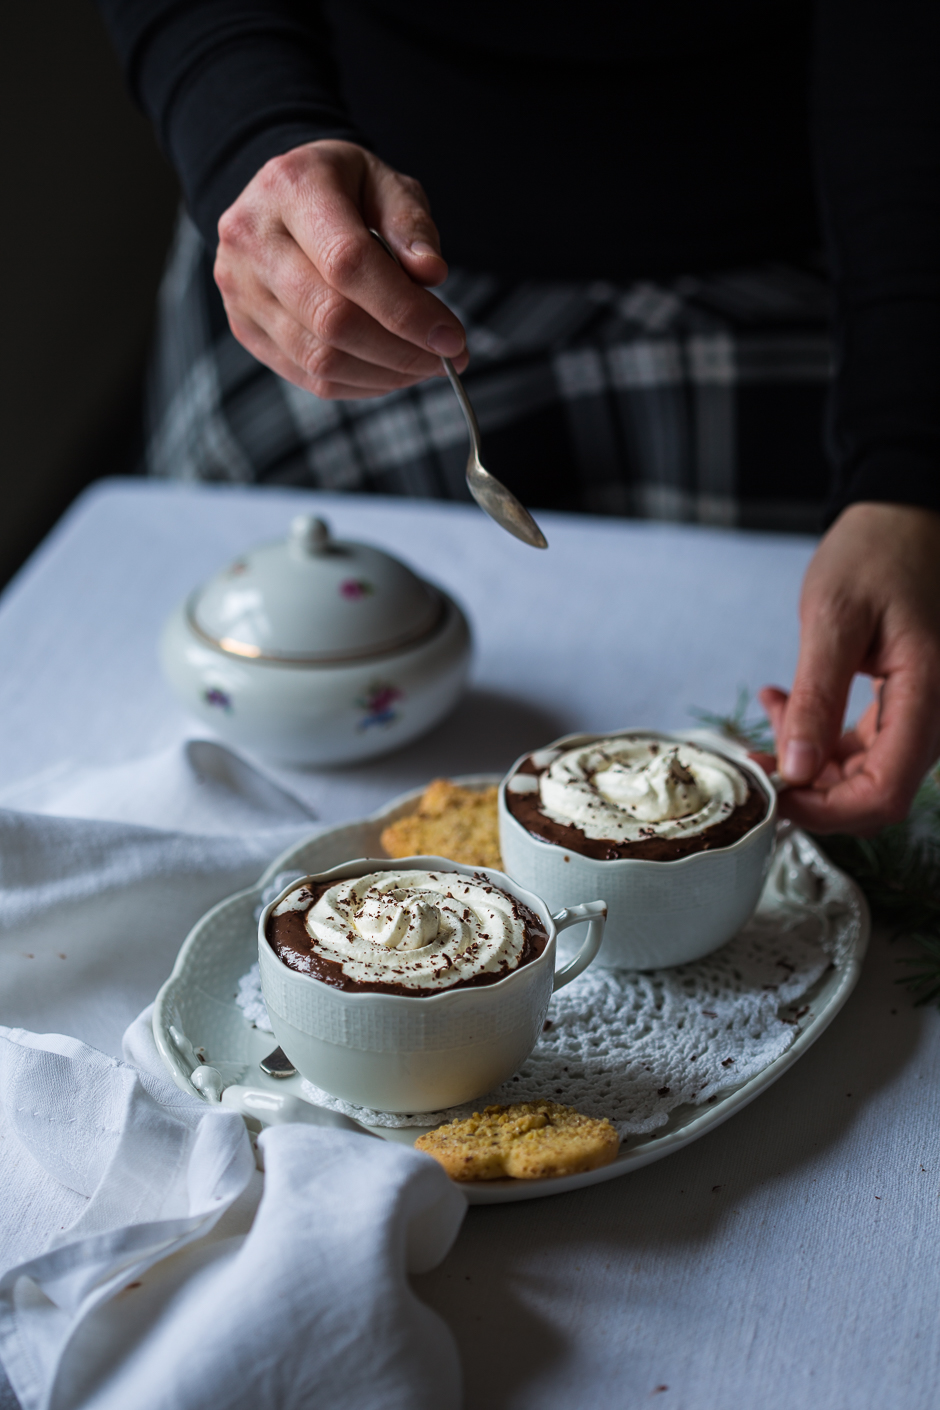 hot chocolate from the Taste of Memories Hungarian country kitchen www.tasteofmemories.com